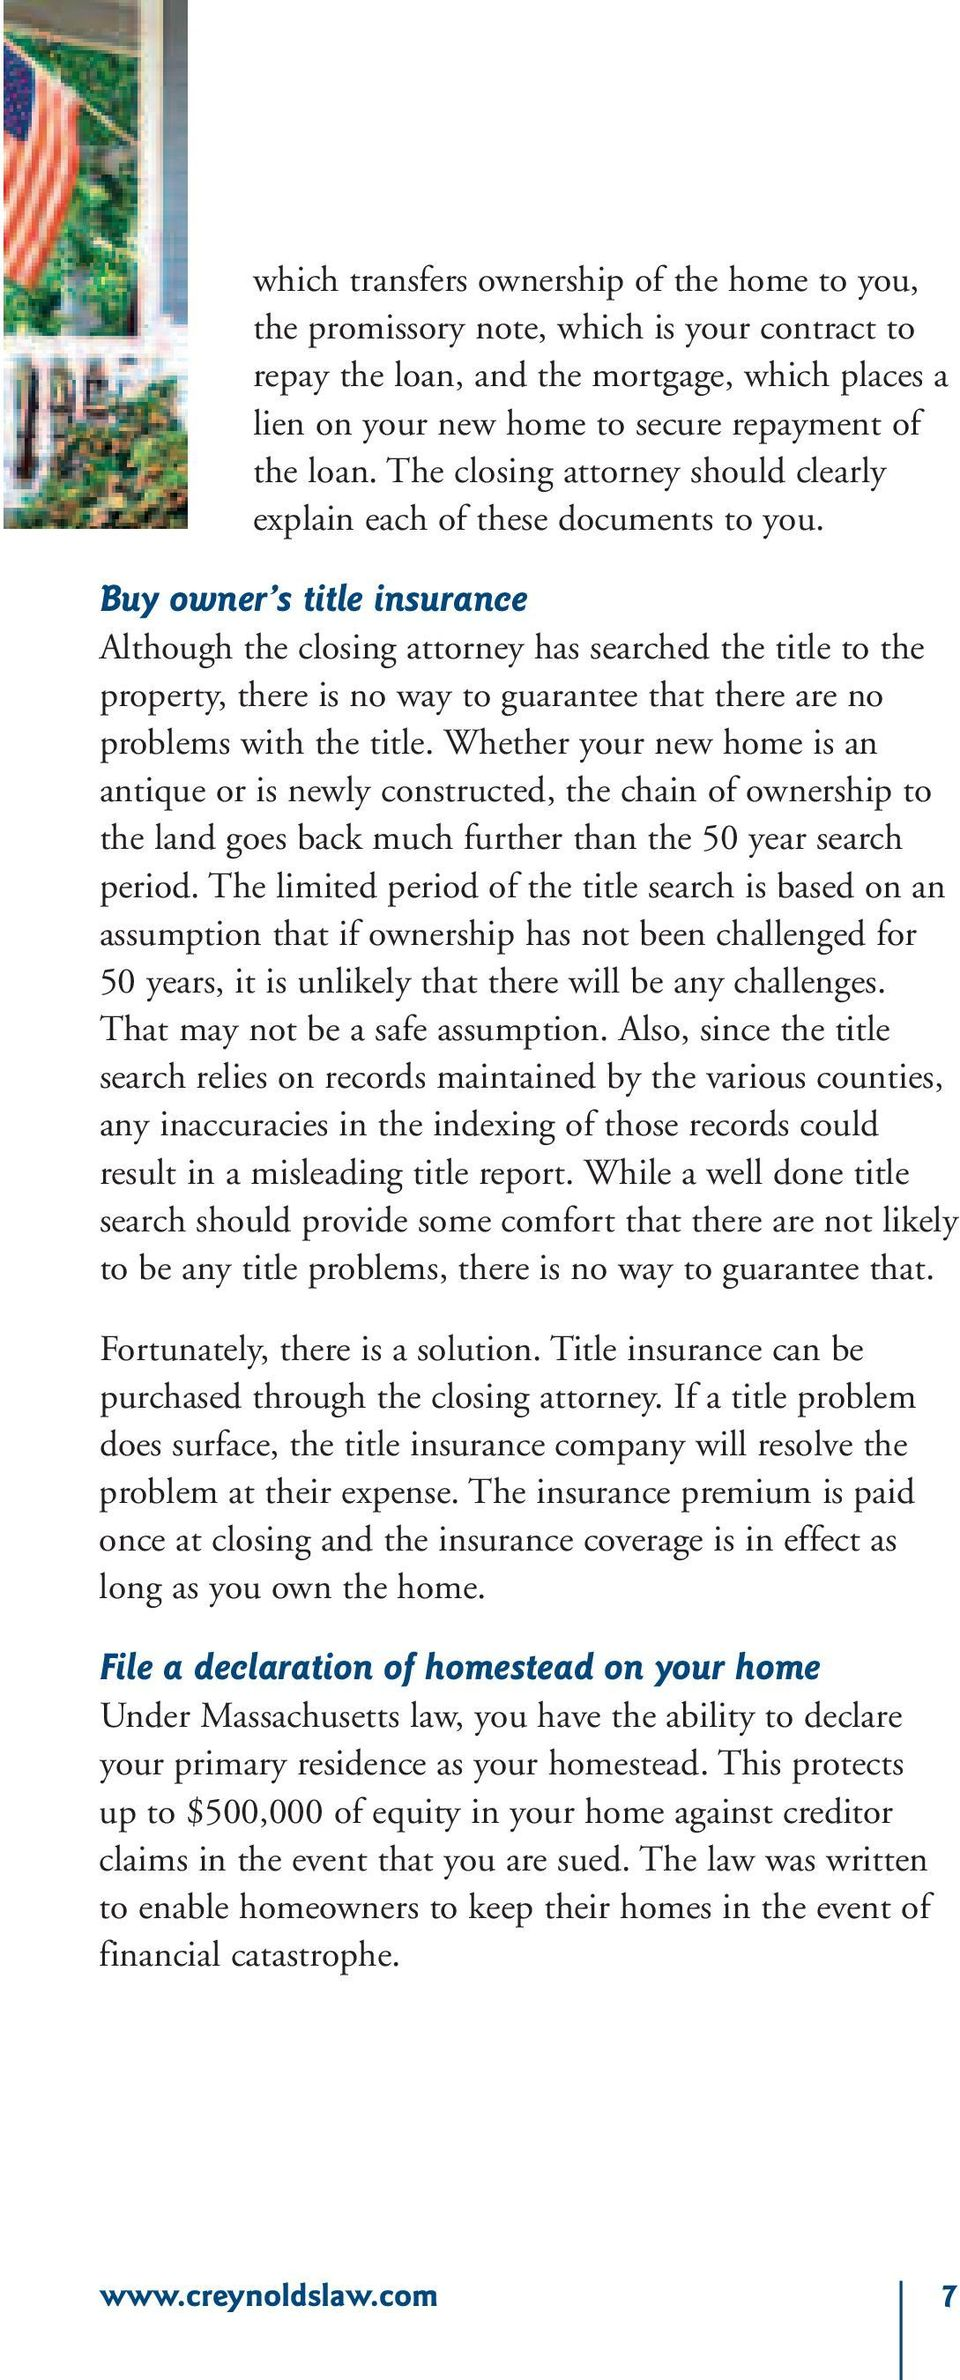 Buy owner s title insurance Although the closing attorney has searched the title to the property, there is no way to guarantee that there are no problems with the title.